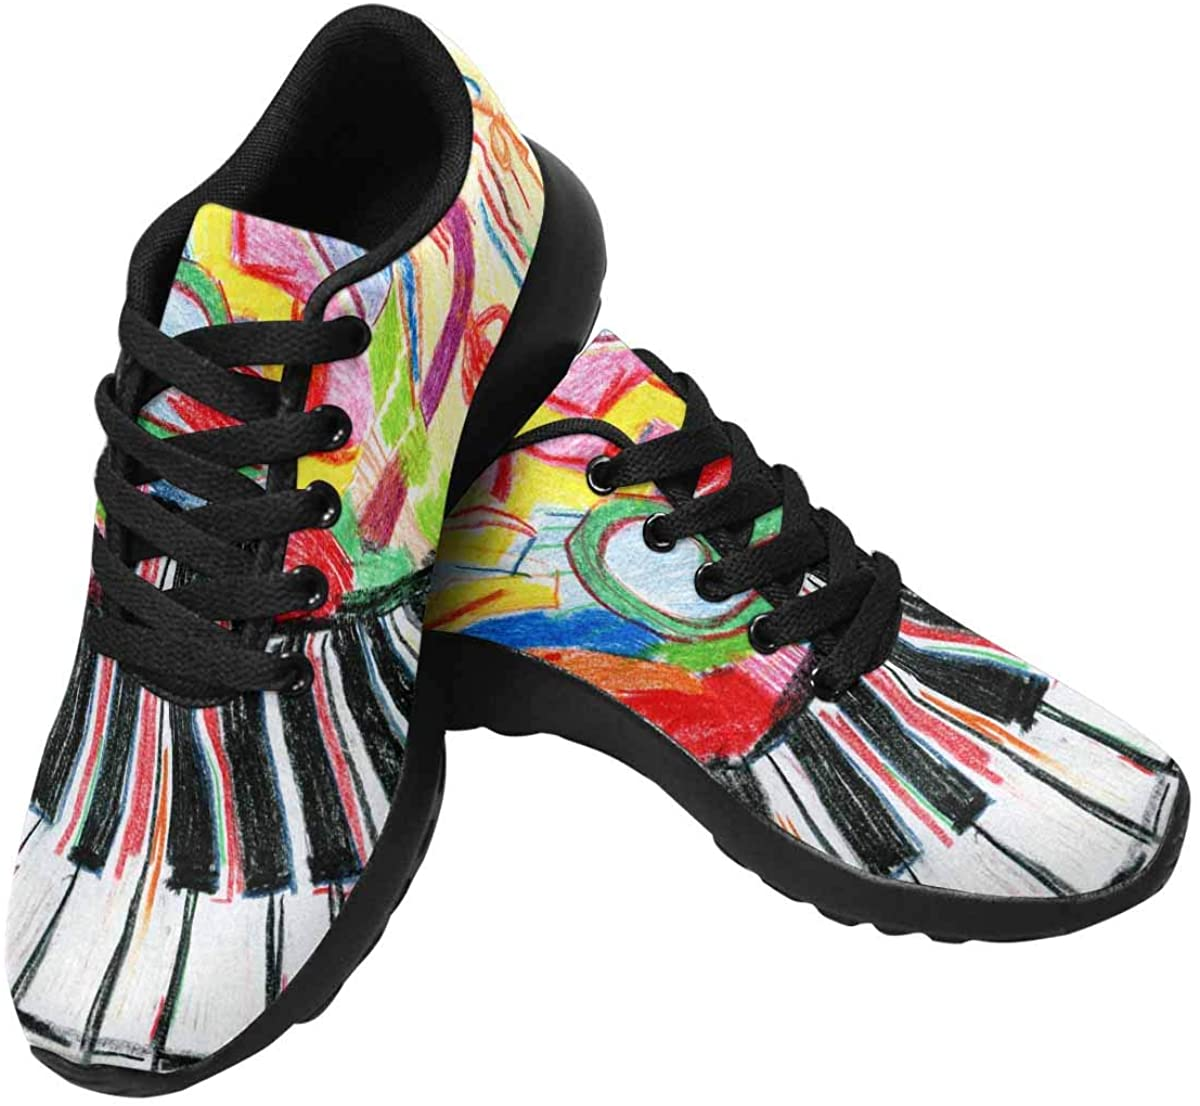 INTERESTPRINT Women's Running Shoes - Casual Breathable Athletic Tennis Sneakers US6-US15